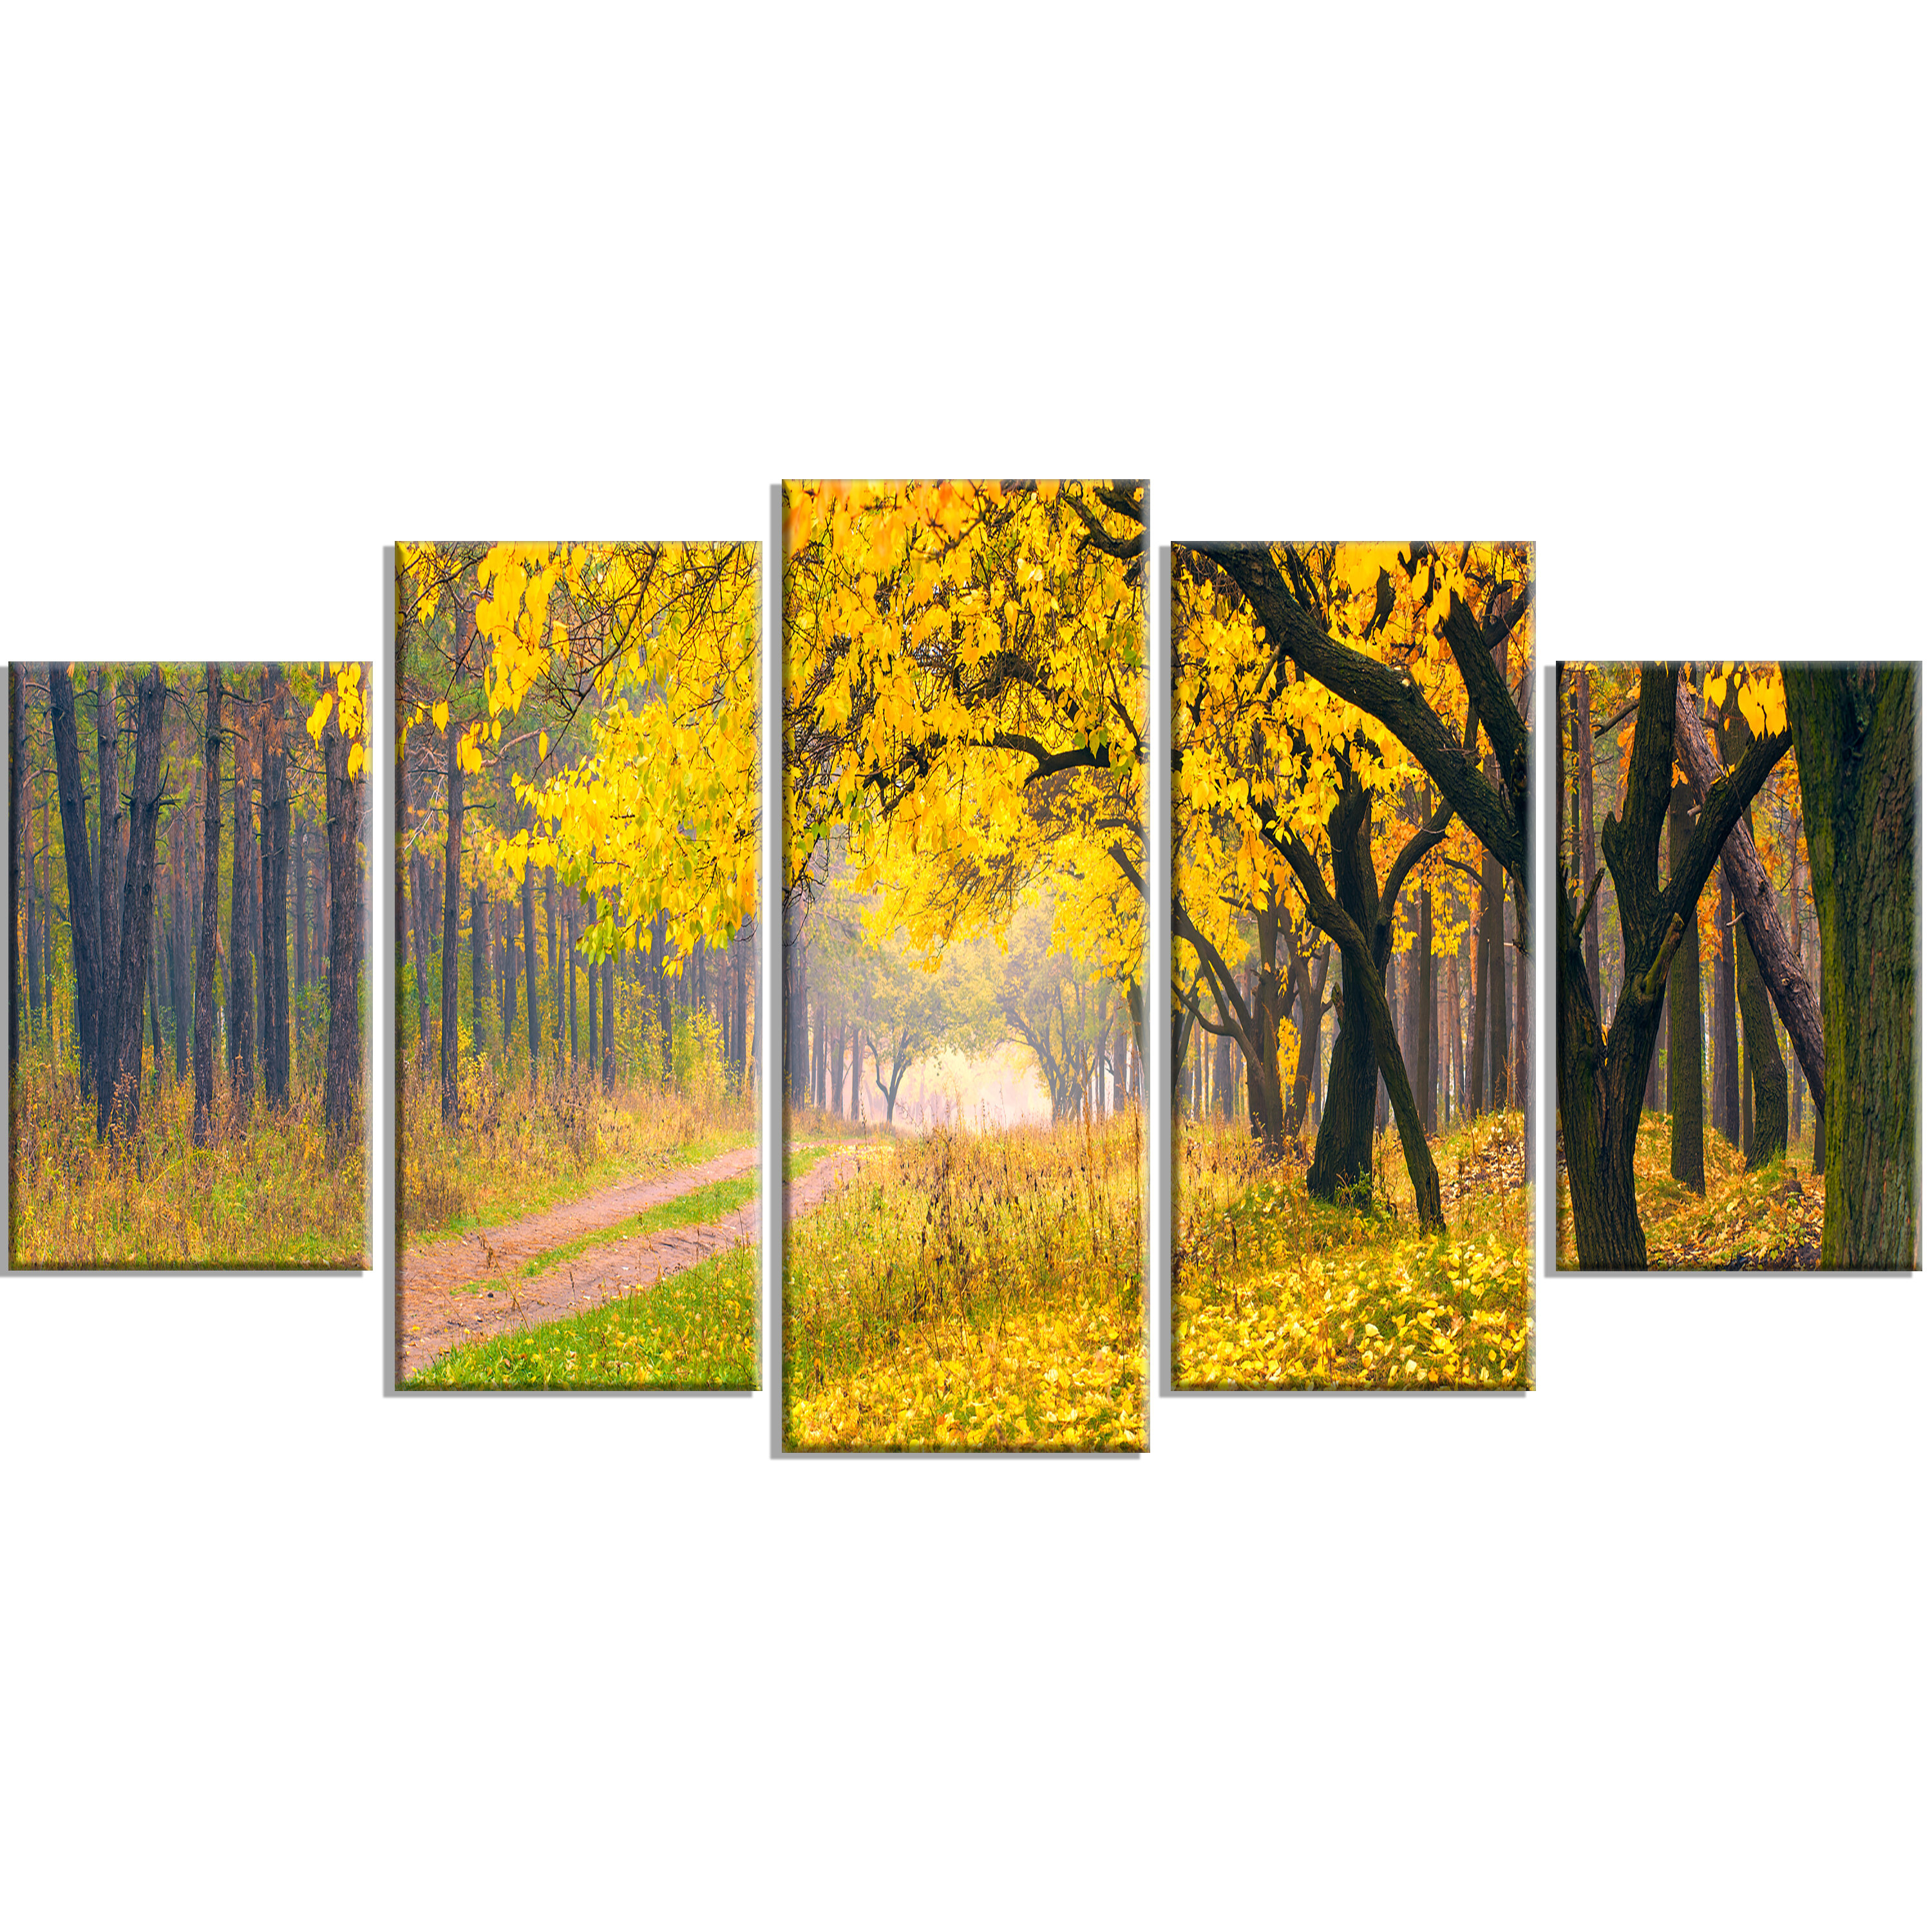 DesignArt \'Bright Yellow Autumn Forest\' 5 Piece Wall Art on Wrapped ...